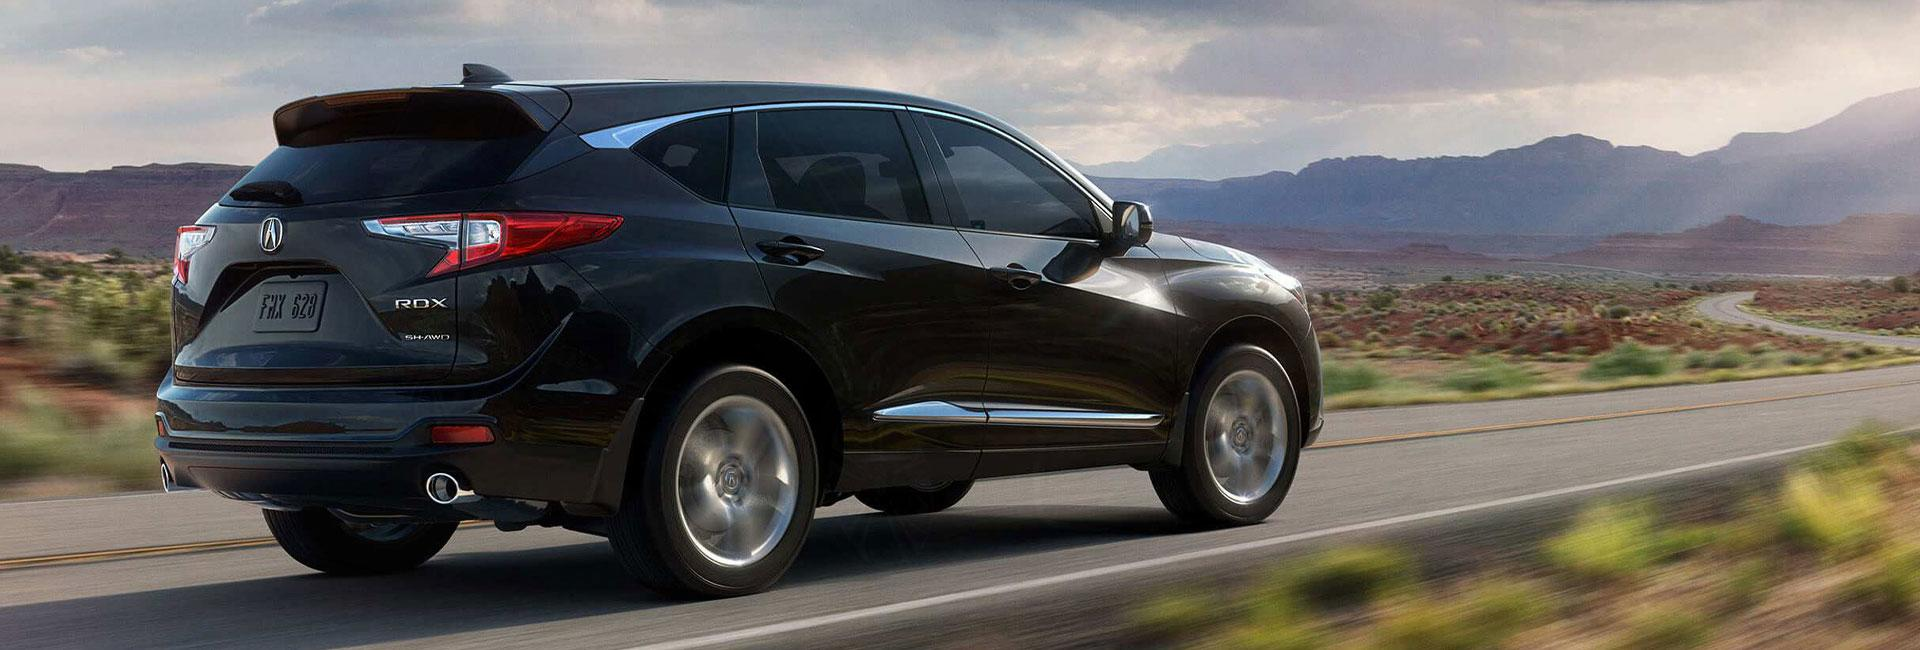 Black Acura RDX on a country road